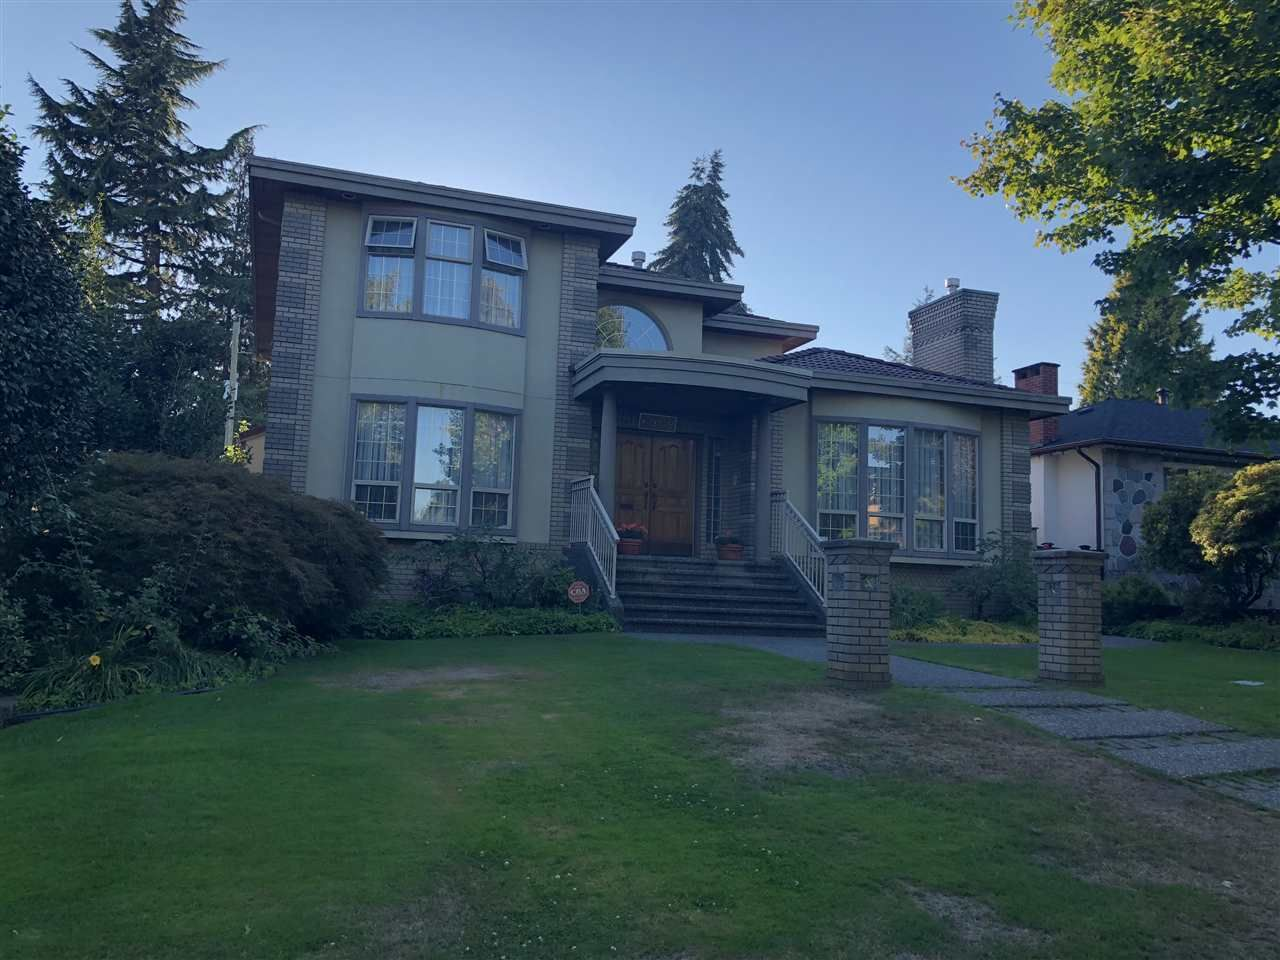 Main Photo: 6909 ASH Street in Vancouver: South Cambie House for sale (Vancouver West)  : MLS®# R2343565